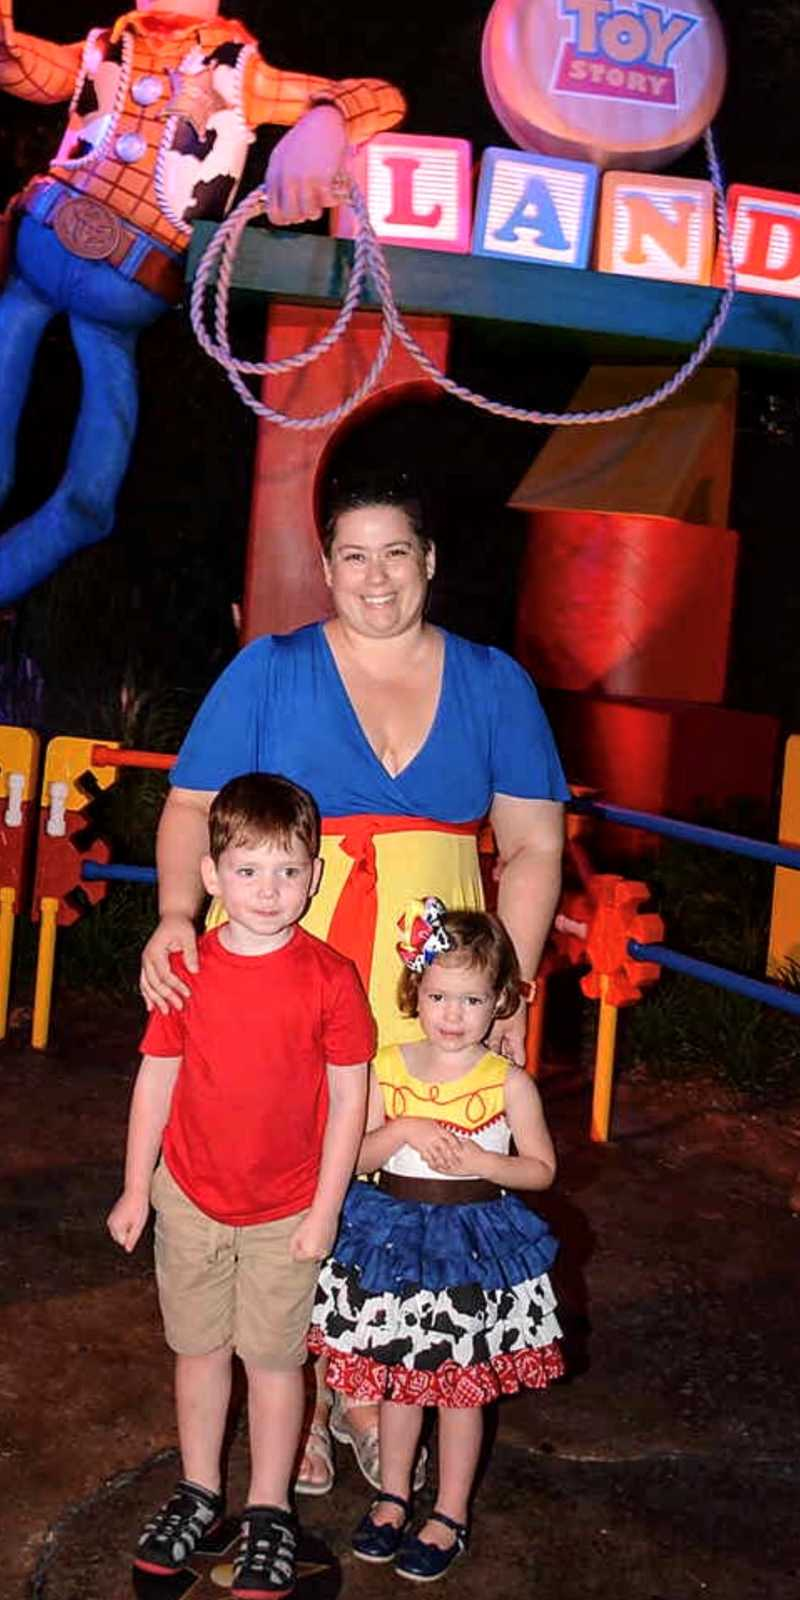 Mom takes a photo with two of her kids in Toy Story Land in Disney while her daughter is dressed up like Jessie